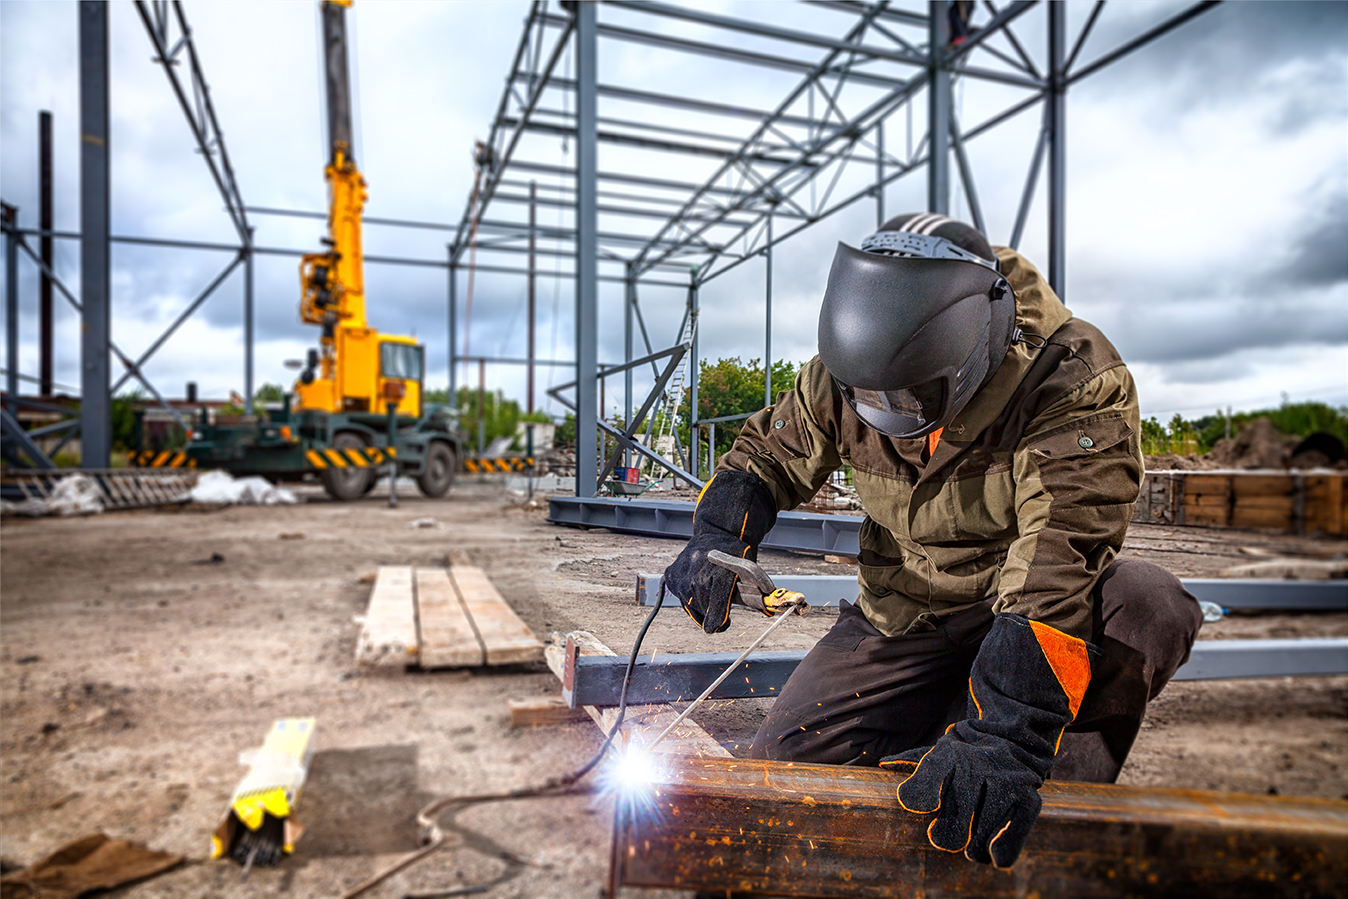 A young  man welder in brown uniform, welding mask and welders l